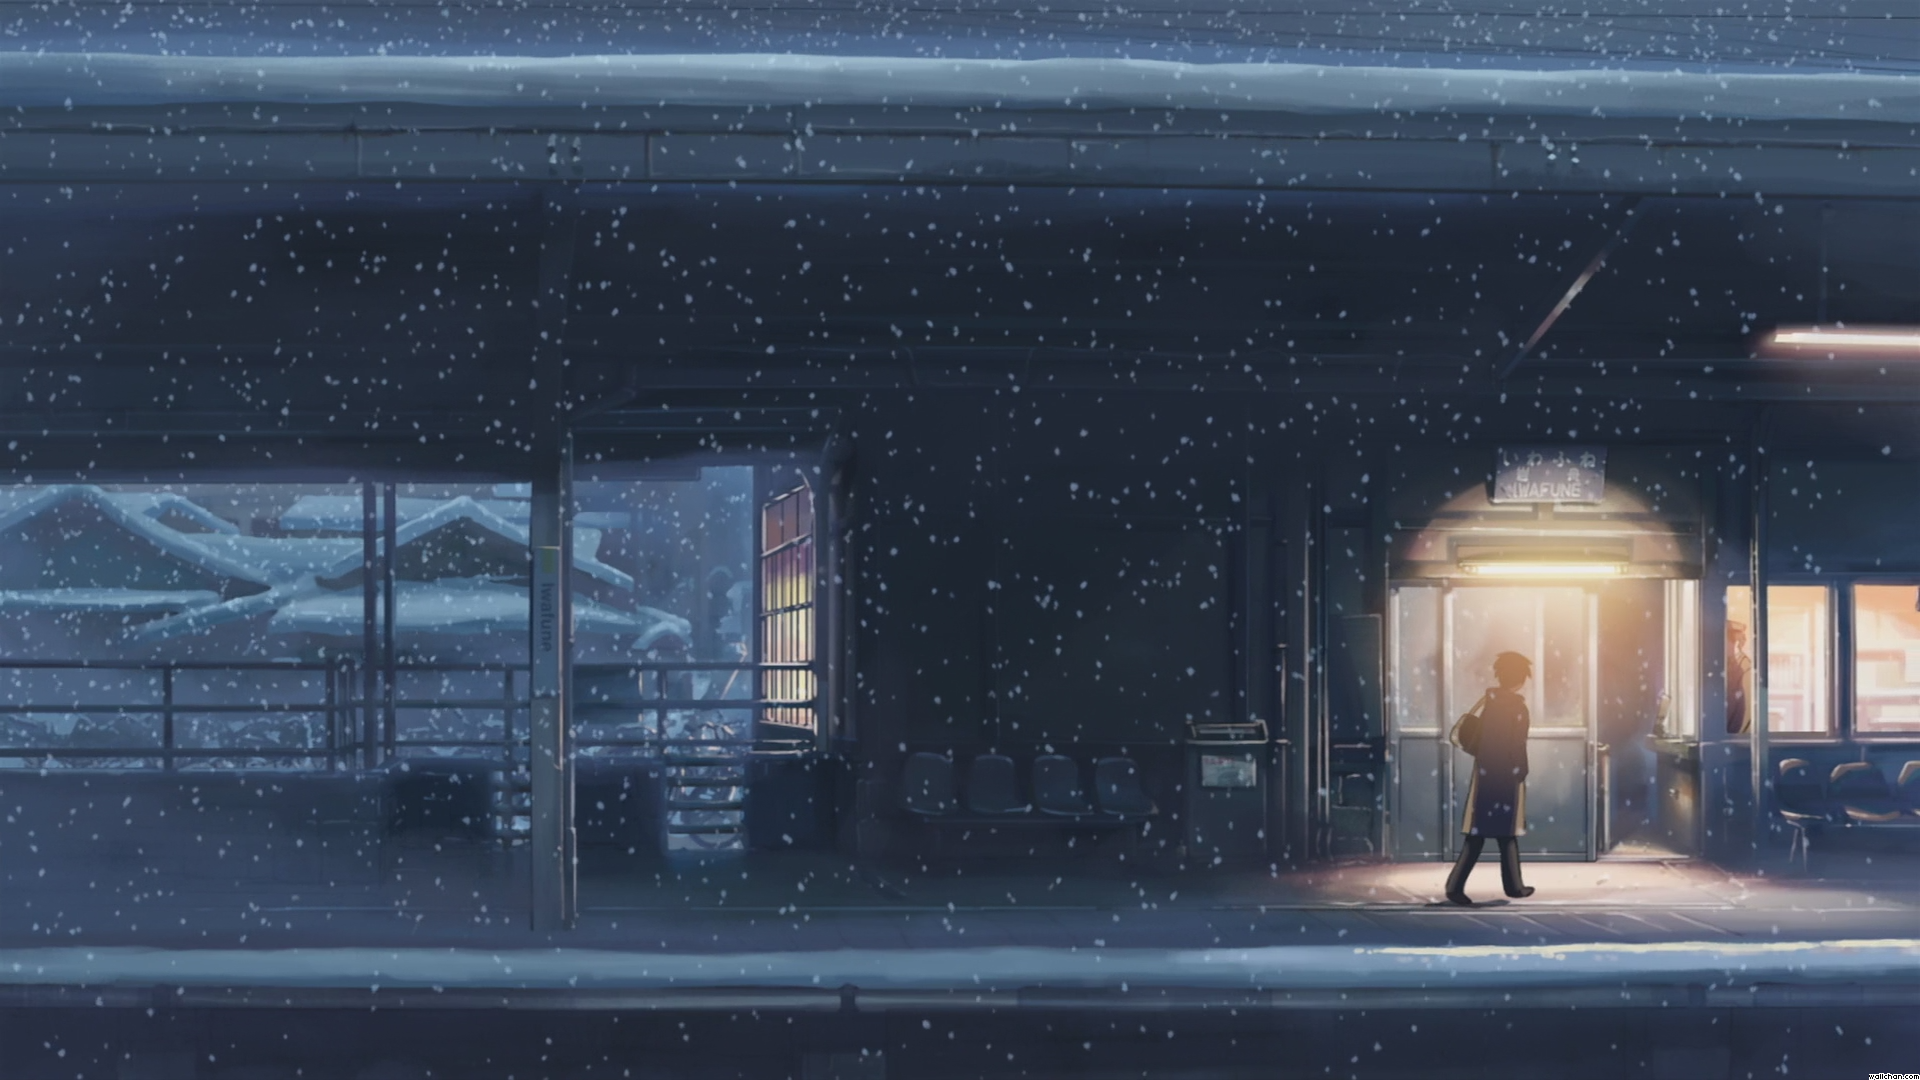 Overall Train Ambiance Anime Scenery Aesthetic Anime